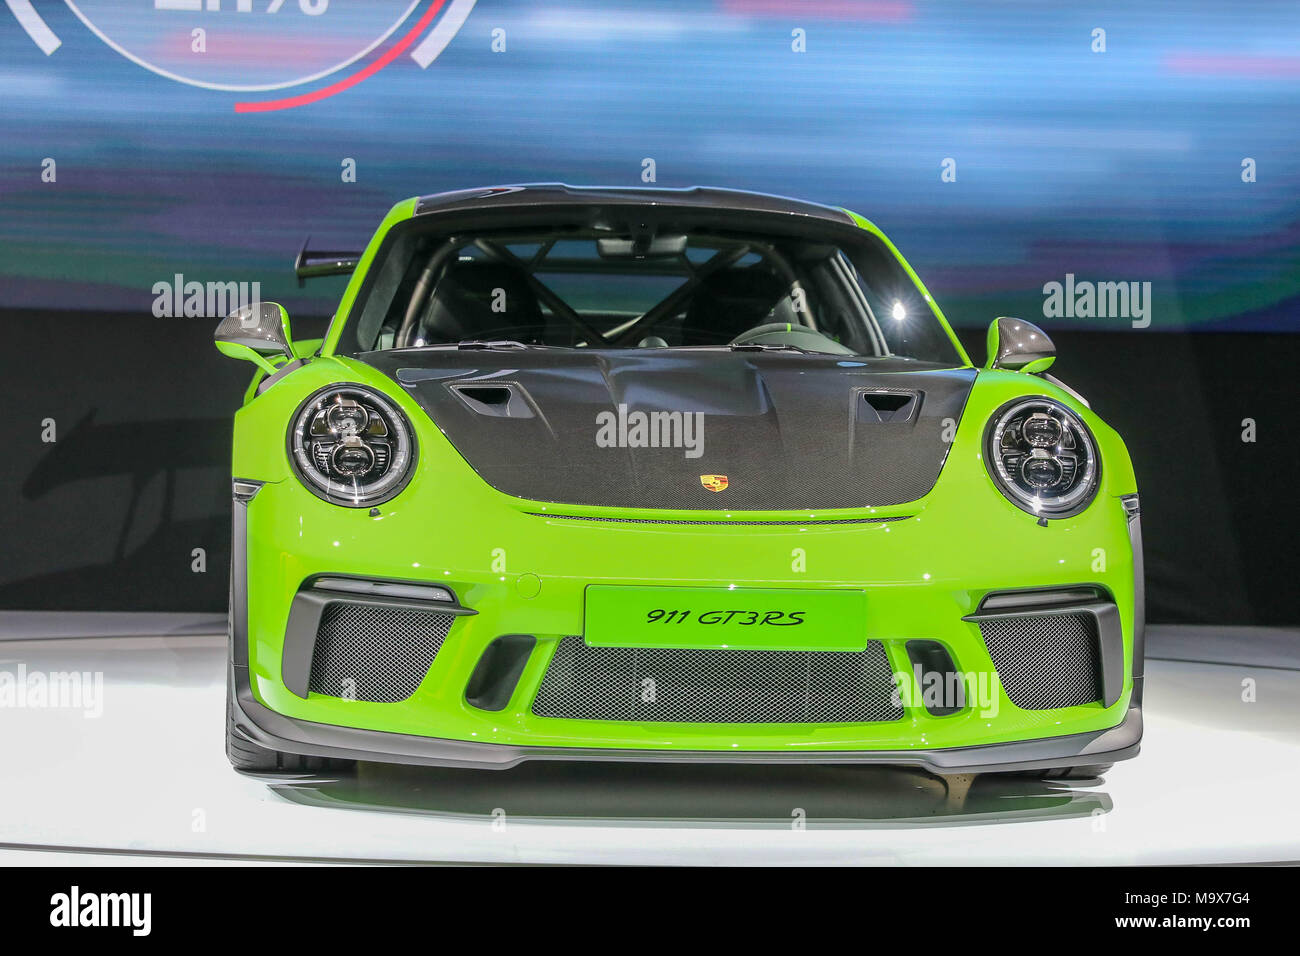 Automobile Fair Stockfotos & Automobile Fair Bilder - Seite 10 - Alamy